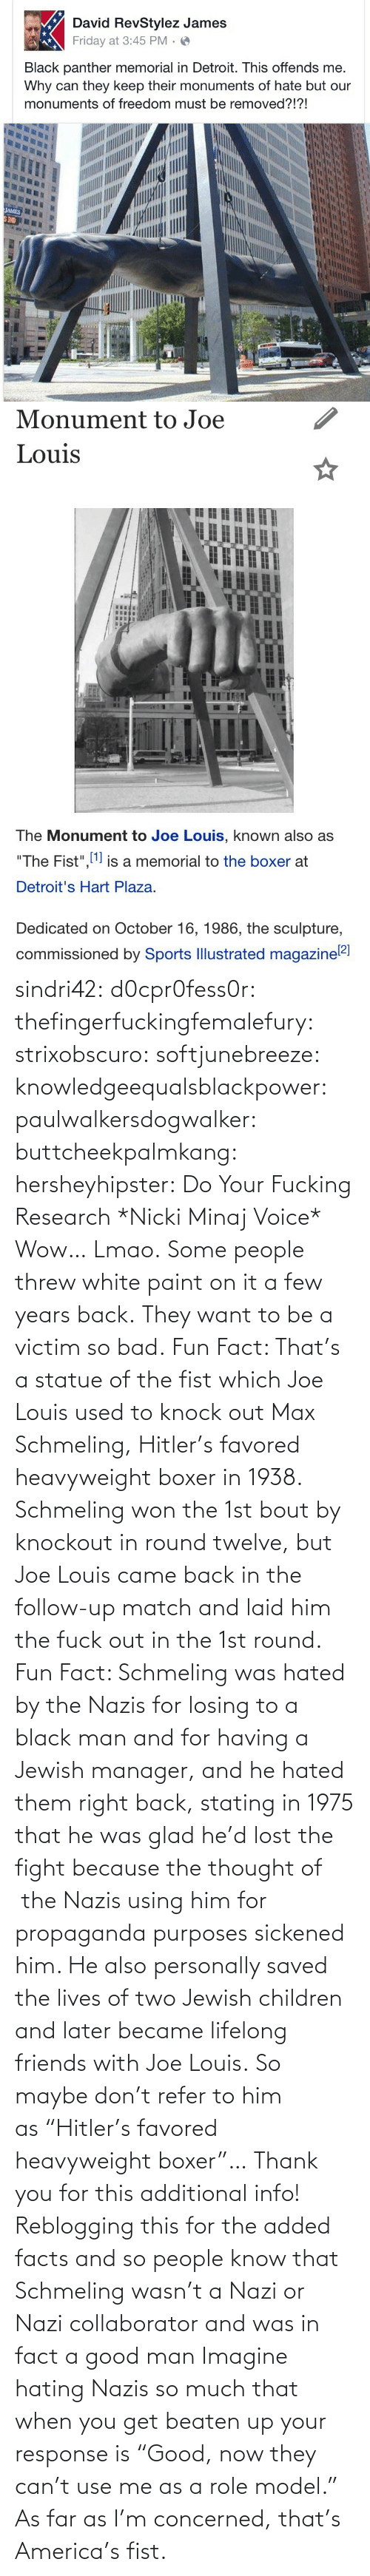 "Jewish: sindri42:  d0cpr0fess0r:  thefingerfuckingfemalefury:  strixobscuro:  softjunebreeze:  knowledgeequalsblackpower:  paulwalkersdogwalker:   buttcheekpalmkang:   hersheyhipster:  Do Your Fucking Research *Nicki Minaj Voice*    Wow… Lmao.   Some people threw white paint on it a few years back.   They want to be a victim so bad.  Fun Fact: That's a statue of the fist which Joe Louis used to knock out Max Schmeling, Hitler's favored heavyweight boxer in 1938. Schmeling won the 1st bout by knockout in round twelve, but Joe Louis came back in the follow-up match and laid him the fuck out in the 1st round.  Fun Fact: Schmeling was hated by the Nazis for losing to a black man and for having a Jewish manager, and he hated them right back, stating in 1975 that he was glad he'd lost the fight because the thought of  the Nazis using him for propaganda purposes sickened him. He also personally saved the lives of two Jewish children and later became lifelong friends with Joe Louis. So maybe don't refer to him as ""Hitler's favored heavyweight boxer""…  Thank you for this additional info! Reblogging this for the added facts and so people know that Schmeling wasn't a Nazi or Nazi collaborator and was in fact a good man   Imagine hating Nazis so much that when you get beaten up your response is ""Good, now they can't use me as a role model.""  As far as I'm concerned, that's America's fist."